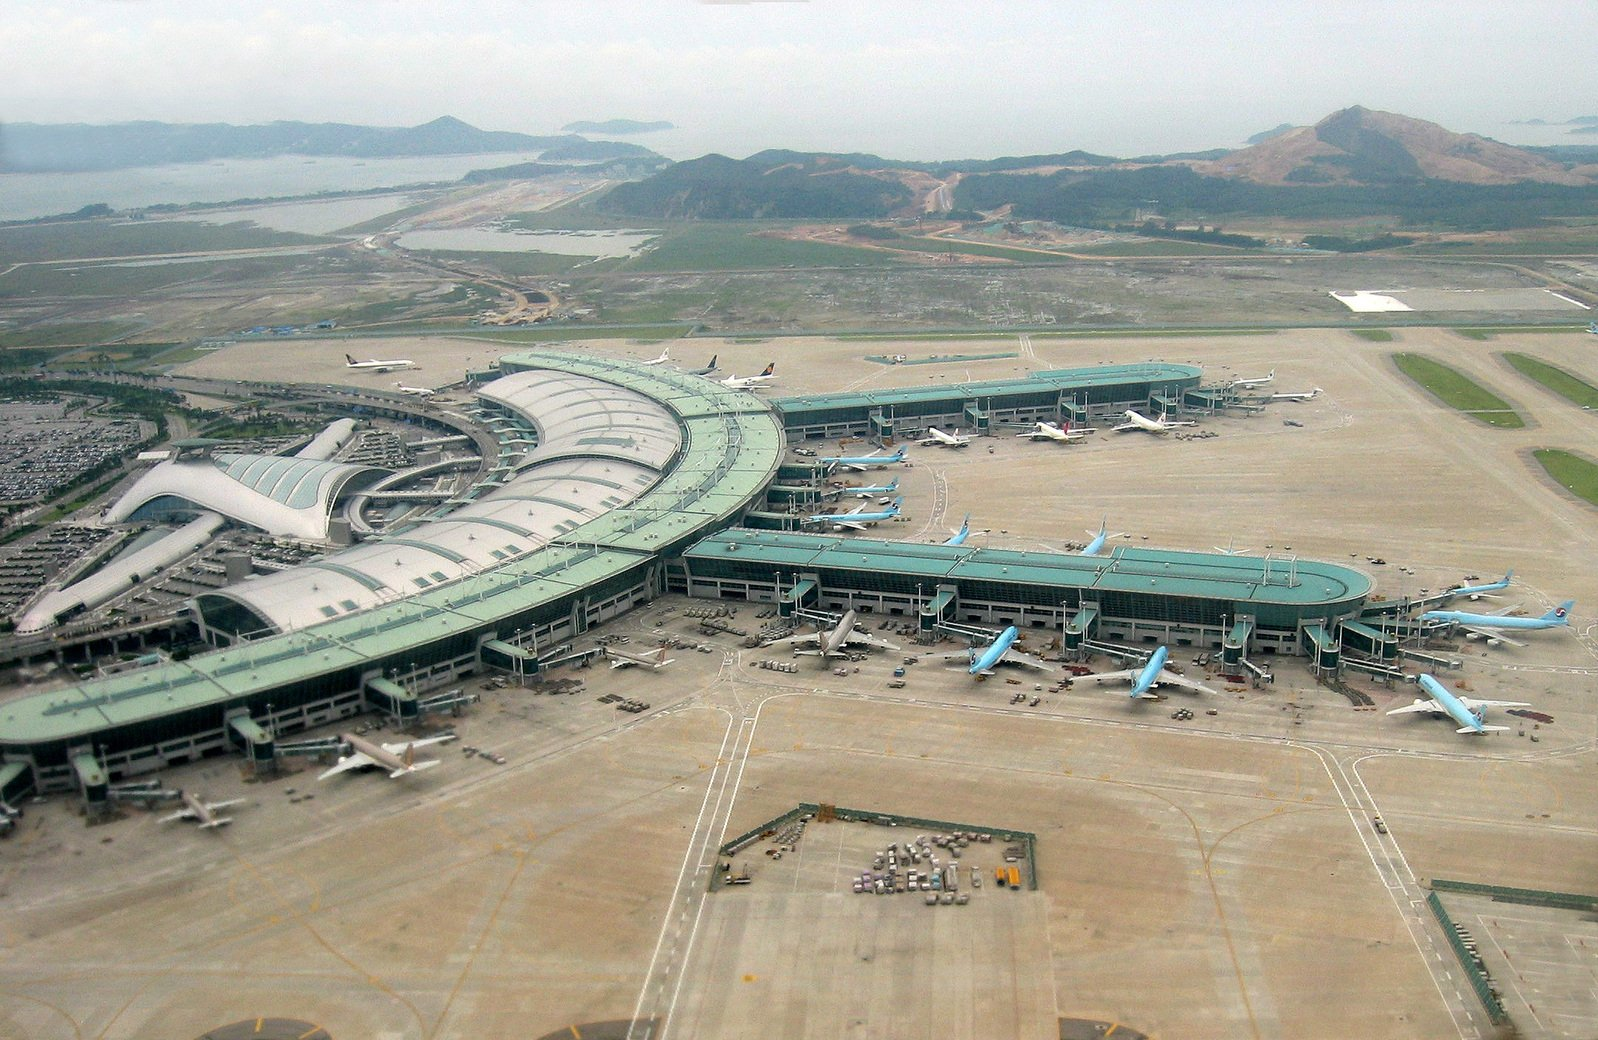 Free Incheon Airport. Seoul Stock Photo - FreeImages.com